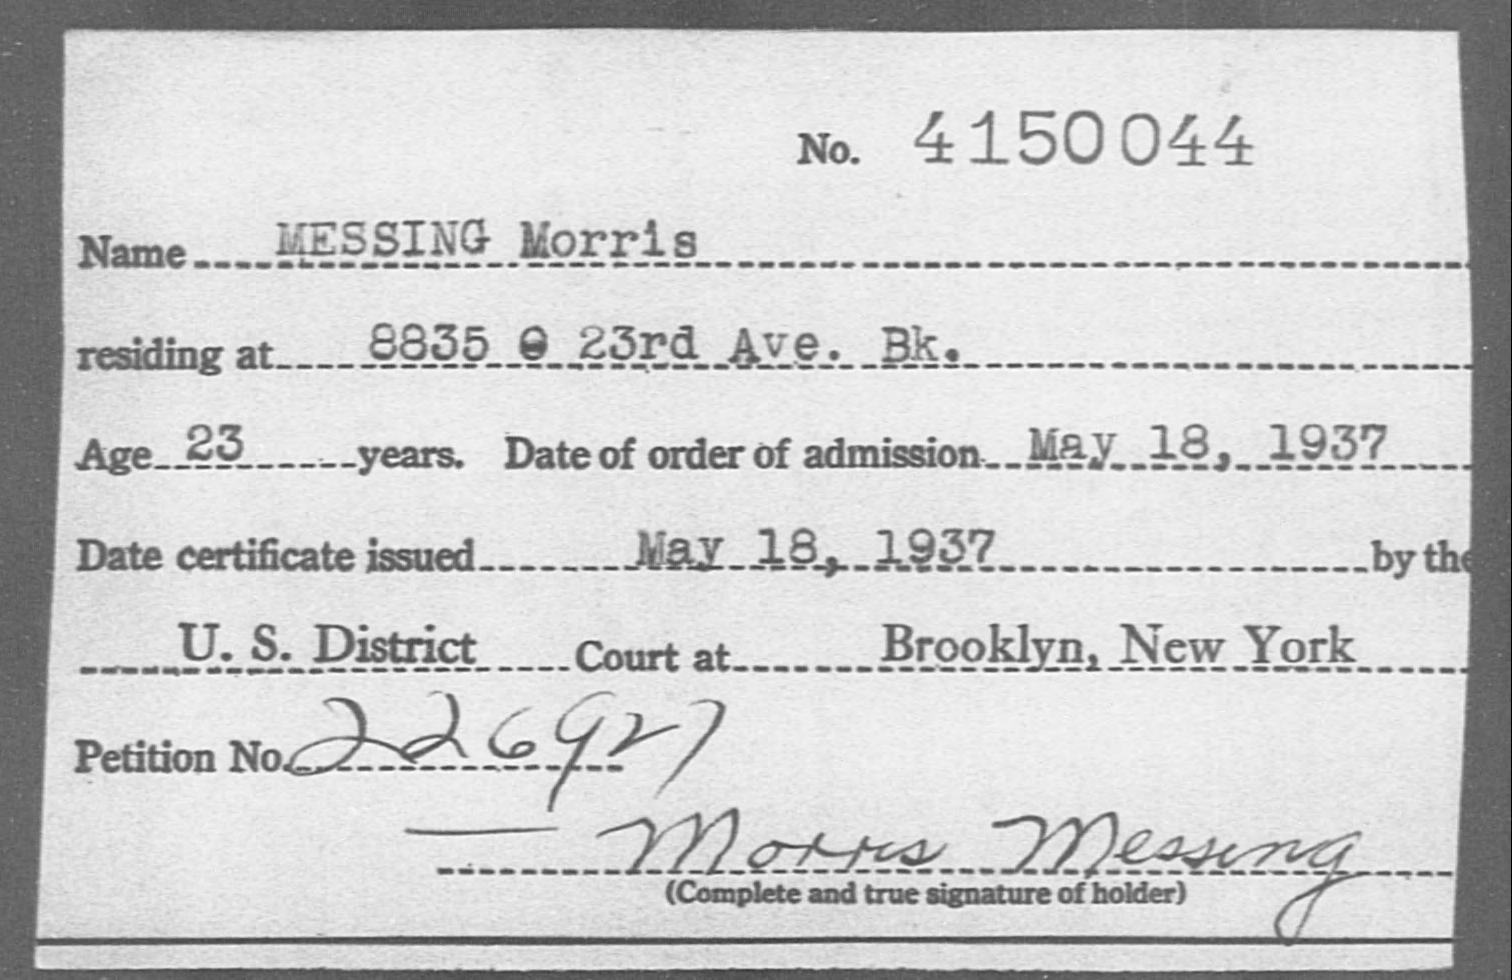 MESSING Morris - Born: [BLANK], Naturalized: 1937